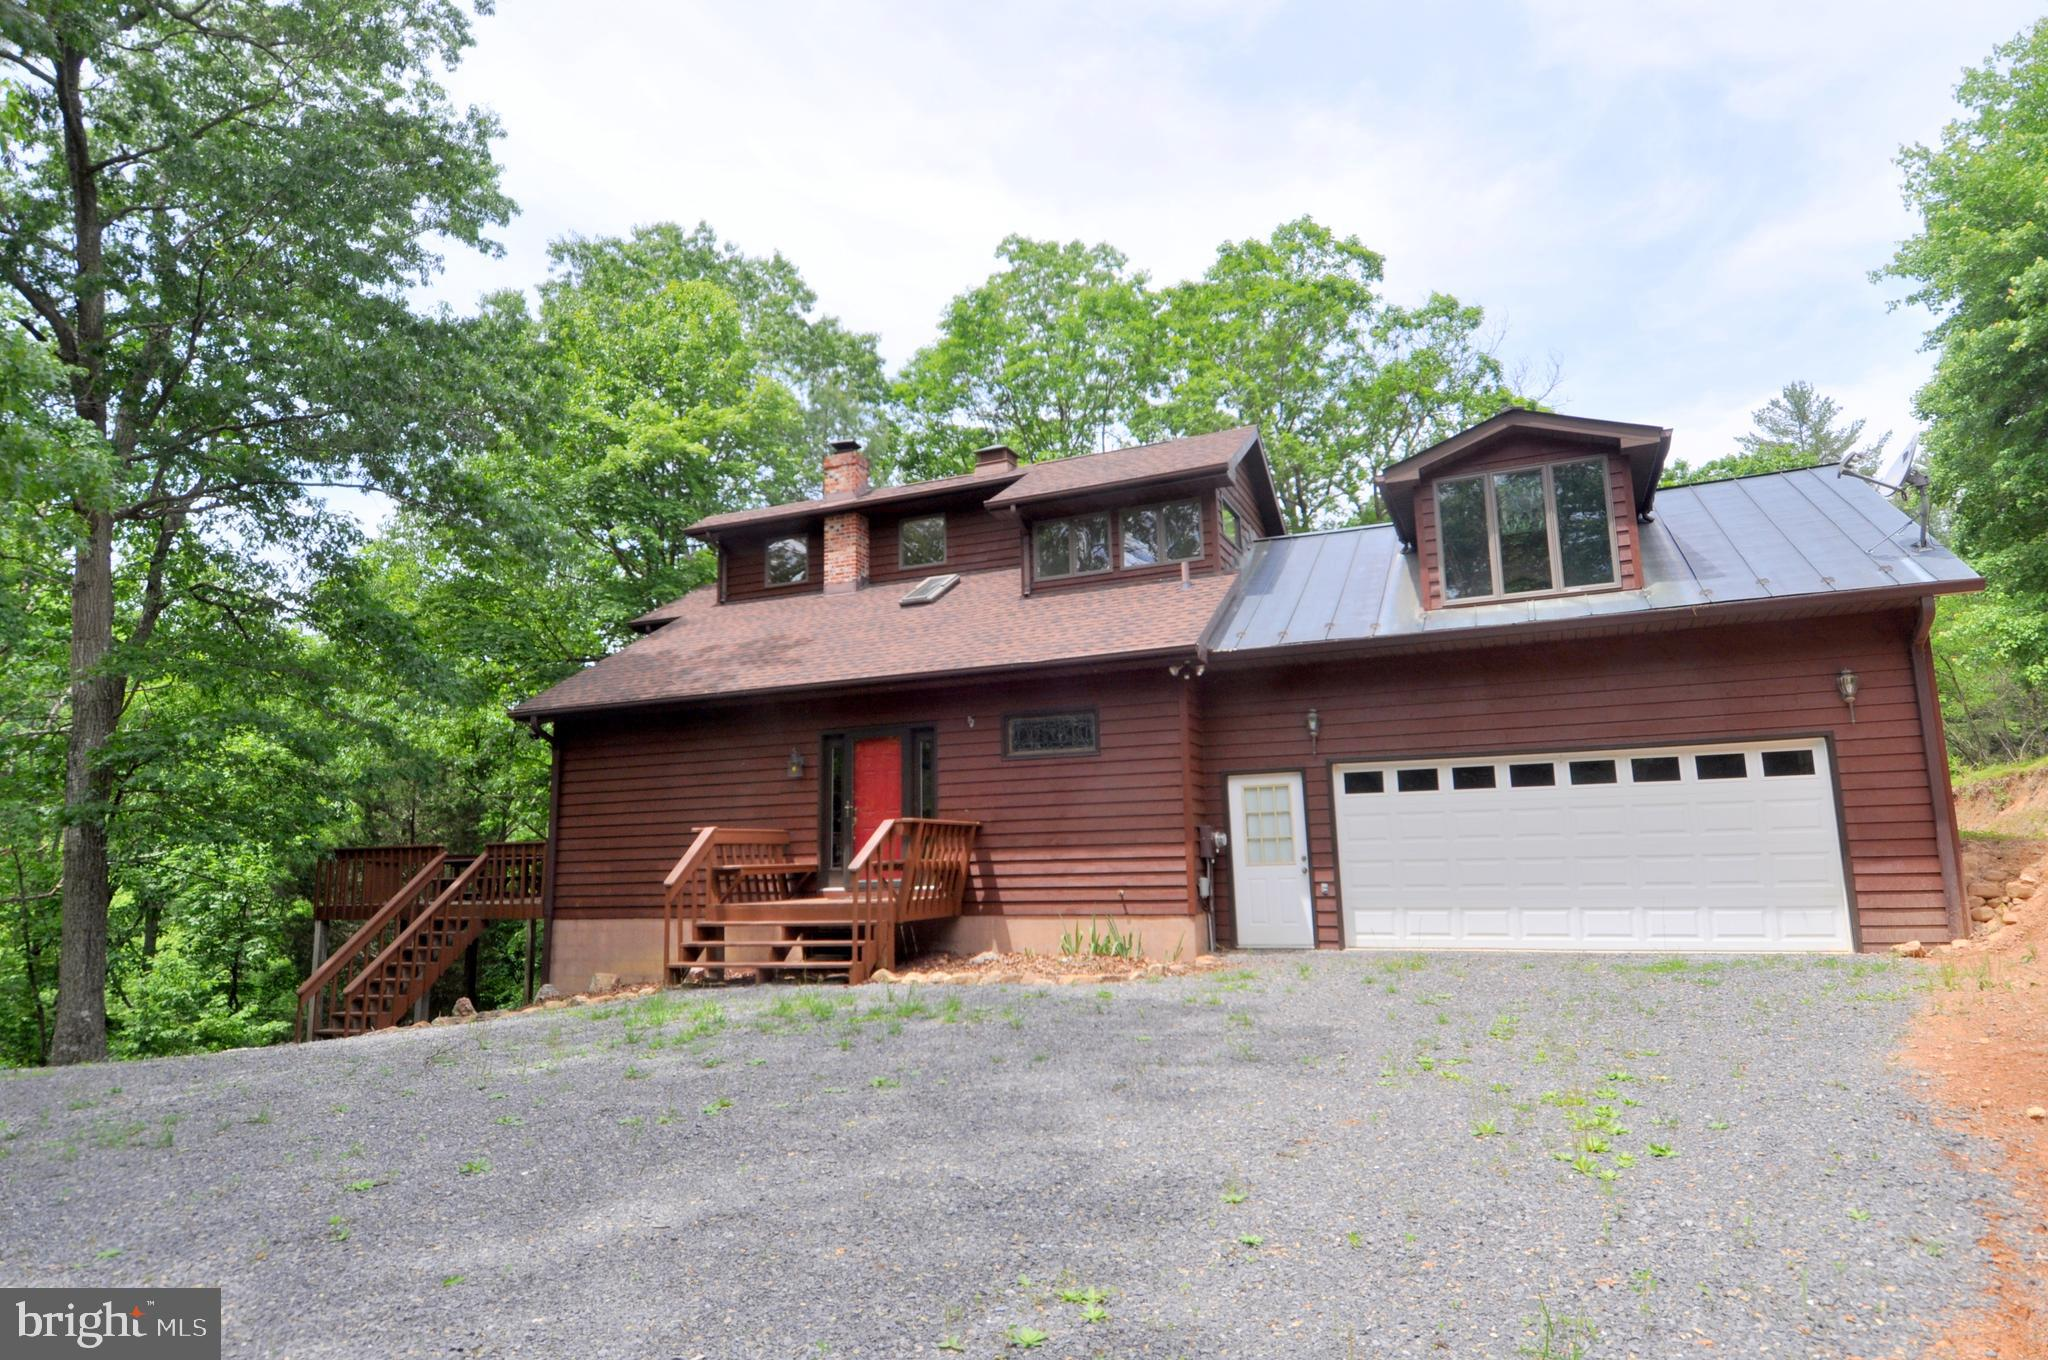 360 PINTAIL LANE, BLOOMERY, WV 26817